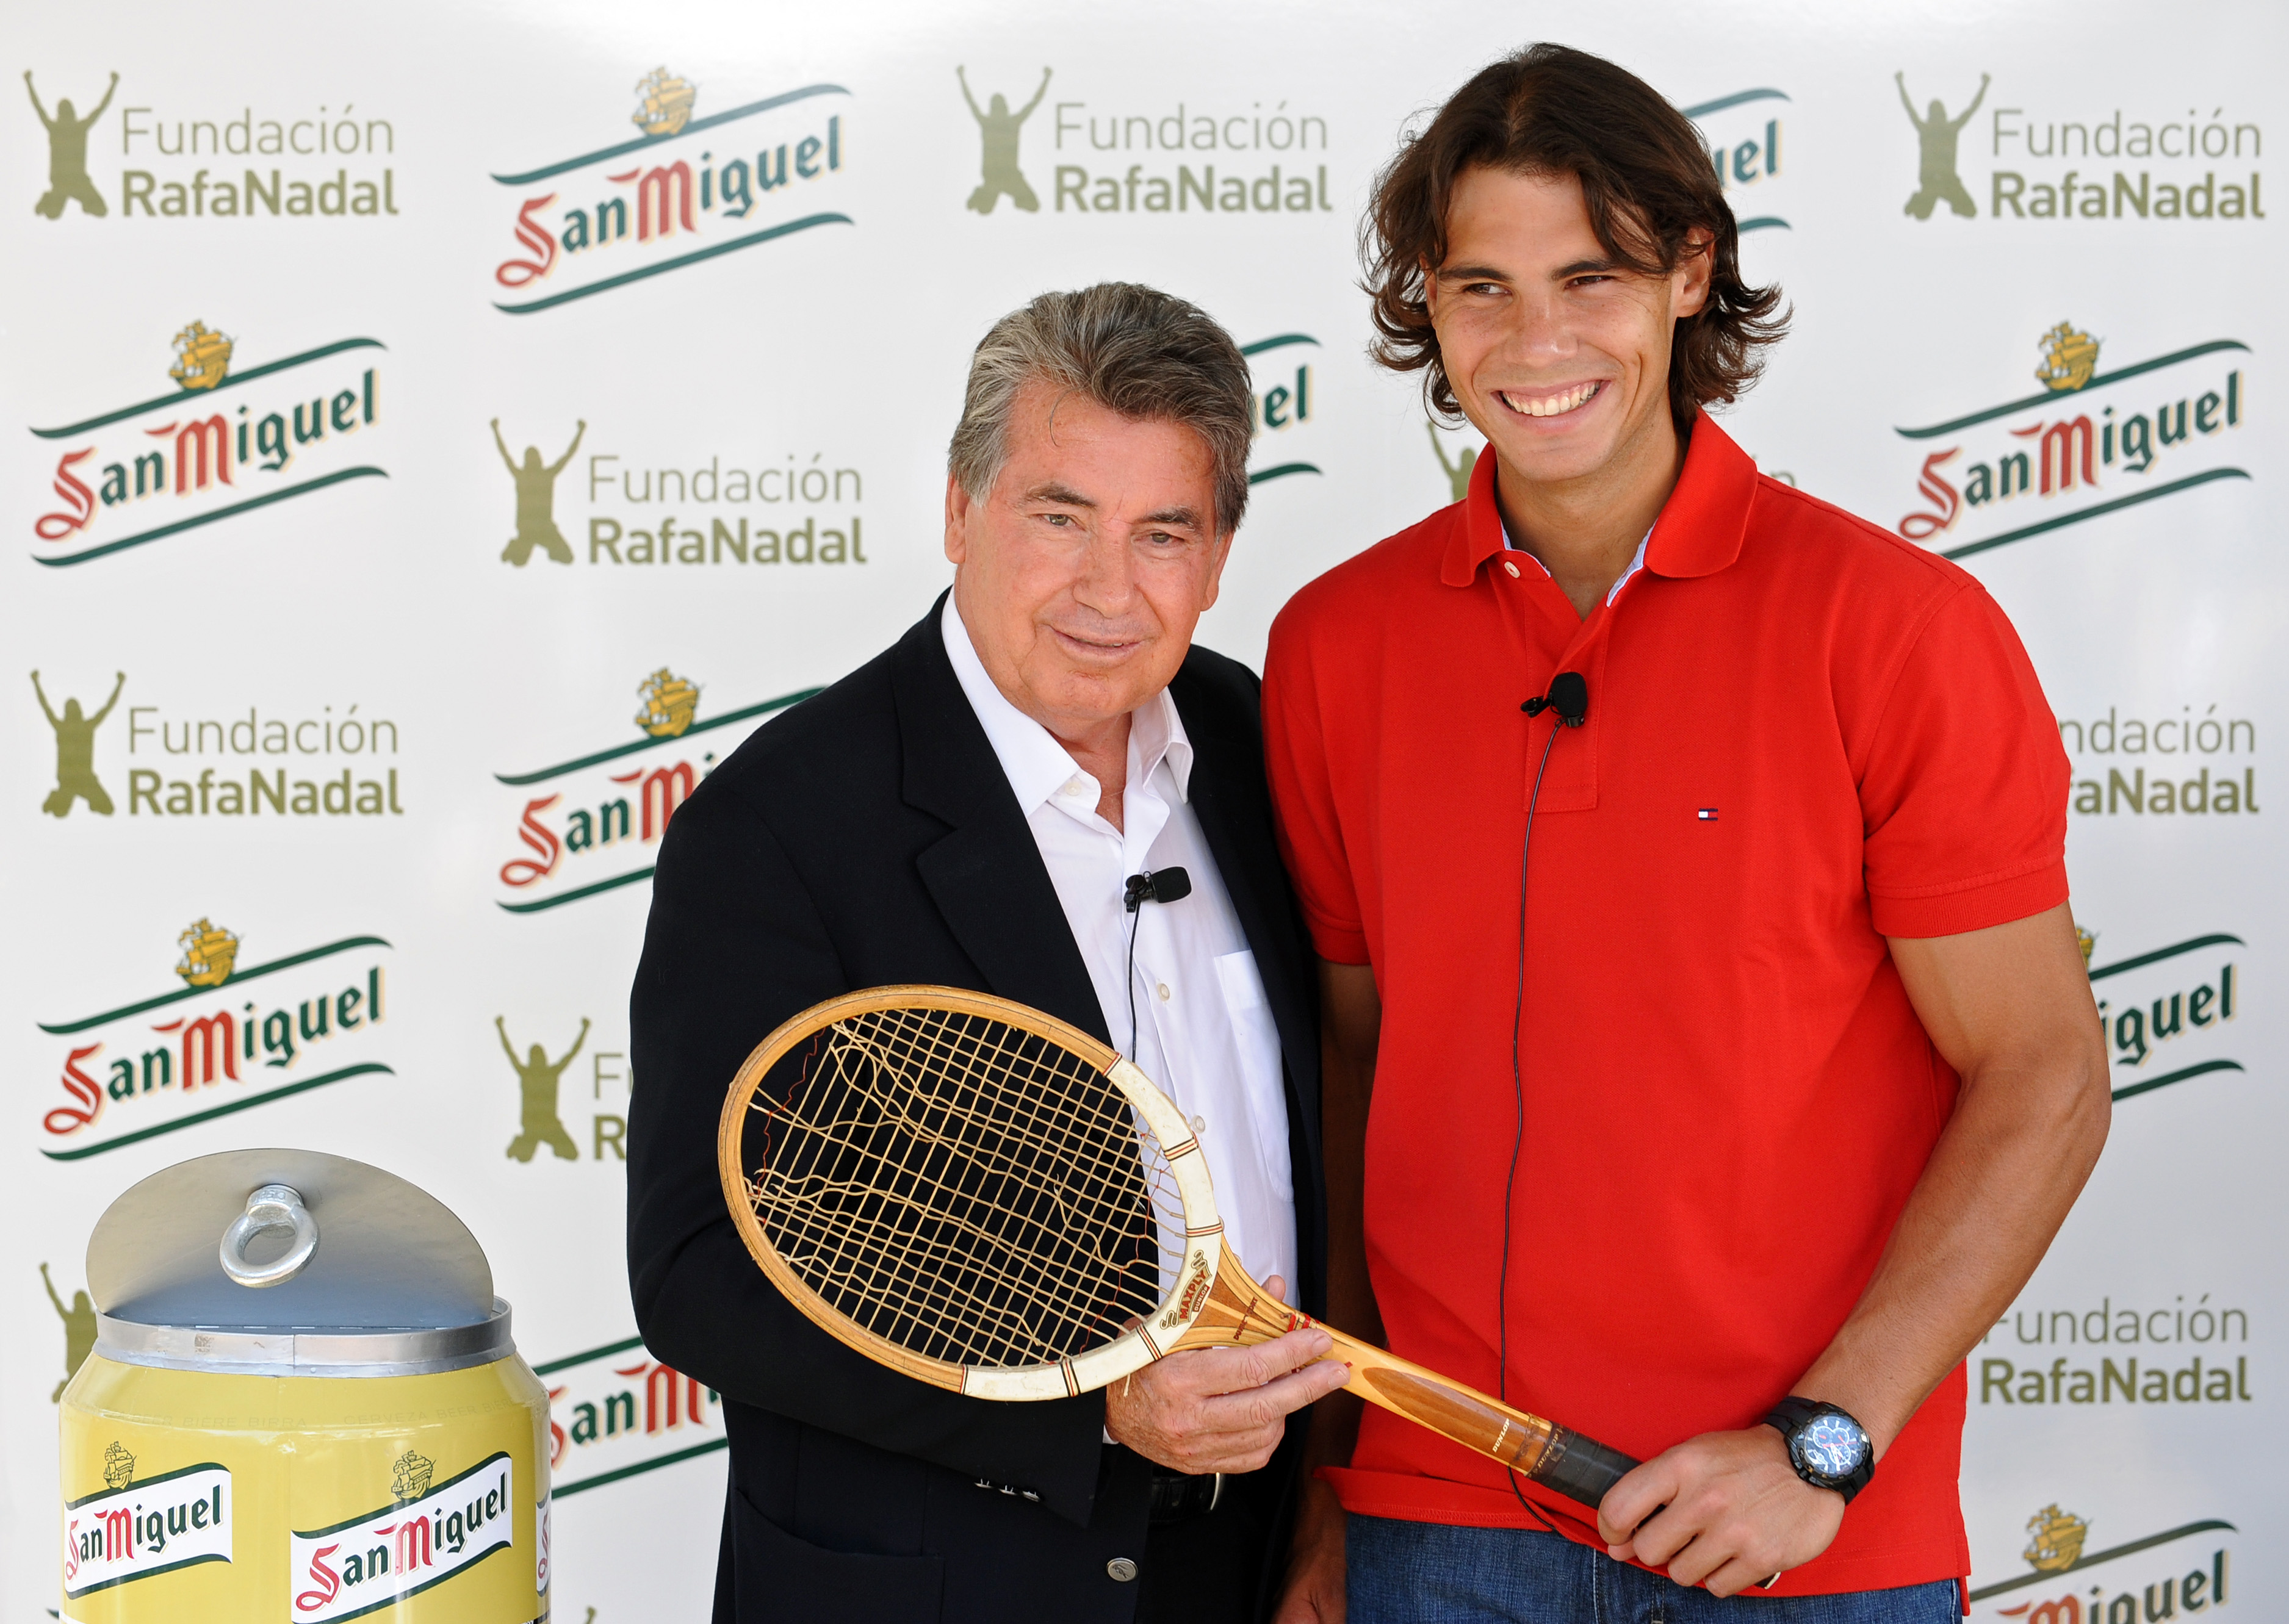 BARCELONA, SPAIN - APRIL 21:  Former tennis great Manolo Santana (L) and Rafael Nadal hold a racket used by Santana in the year he won the Wimbledon Championships during a promotional event for Nadal's foundation on day two of the ATP 500 World Tour Barce